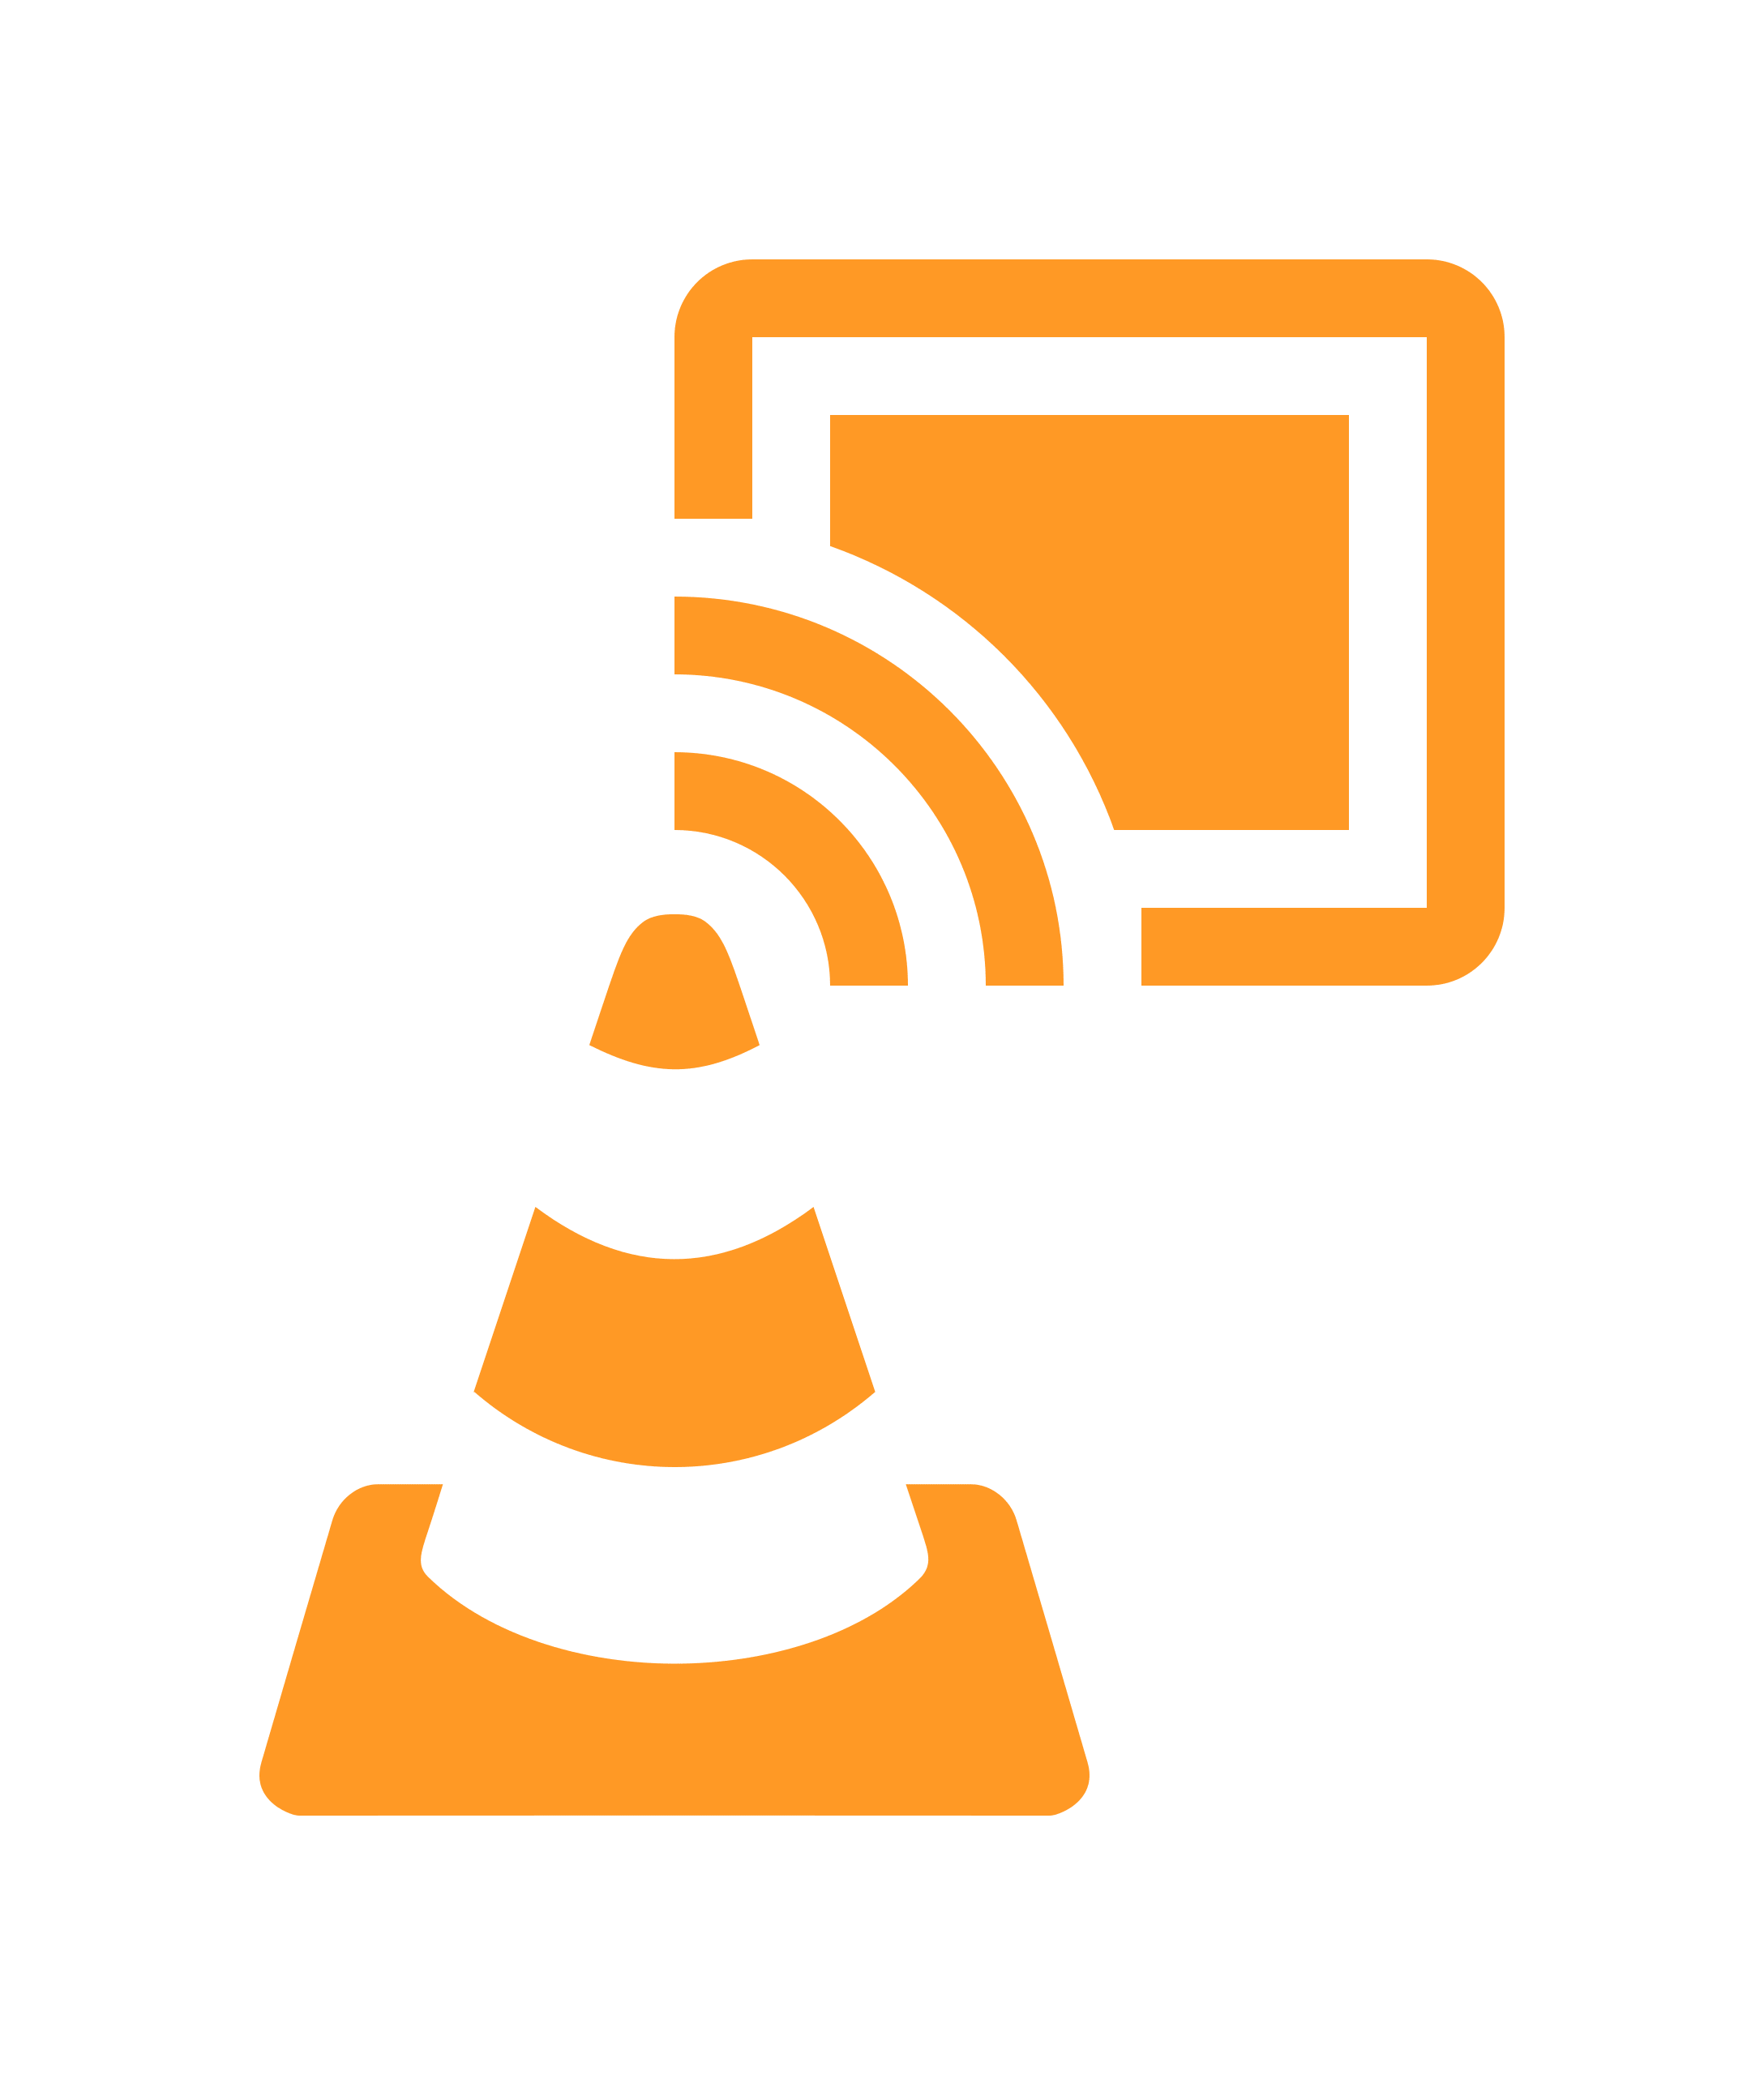 vlc-android/res/drawable-xhdpi/renderer_background_cone.png